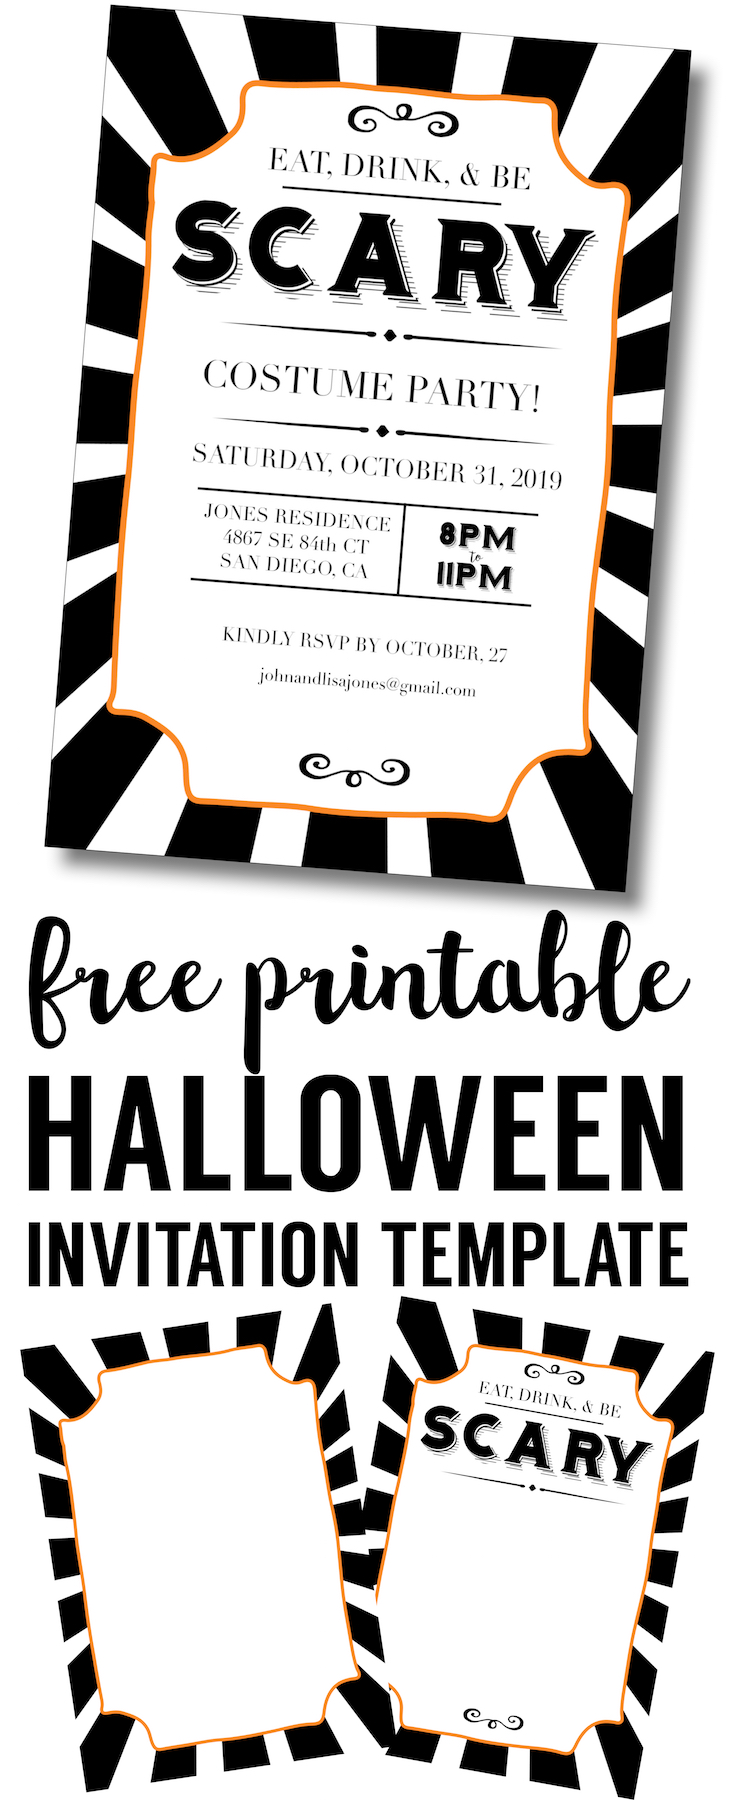 Halloween-invitation-template-long-1 - Paper Trail Design